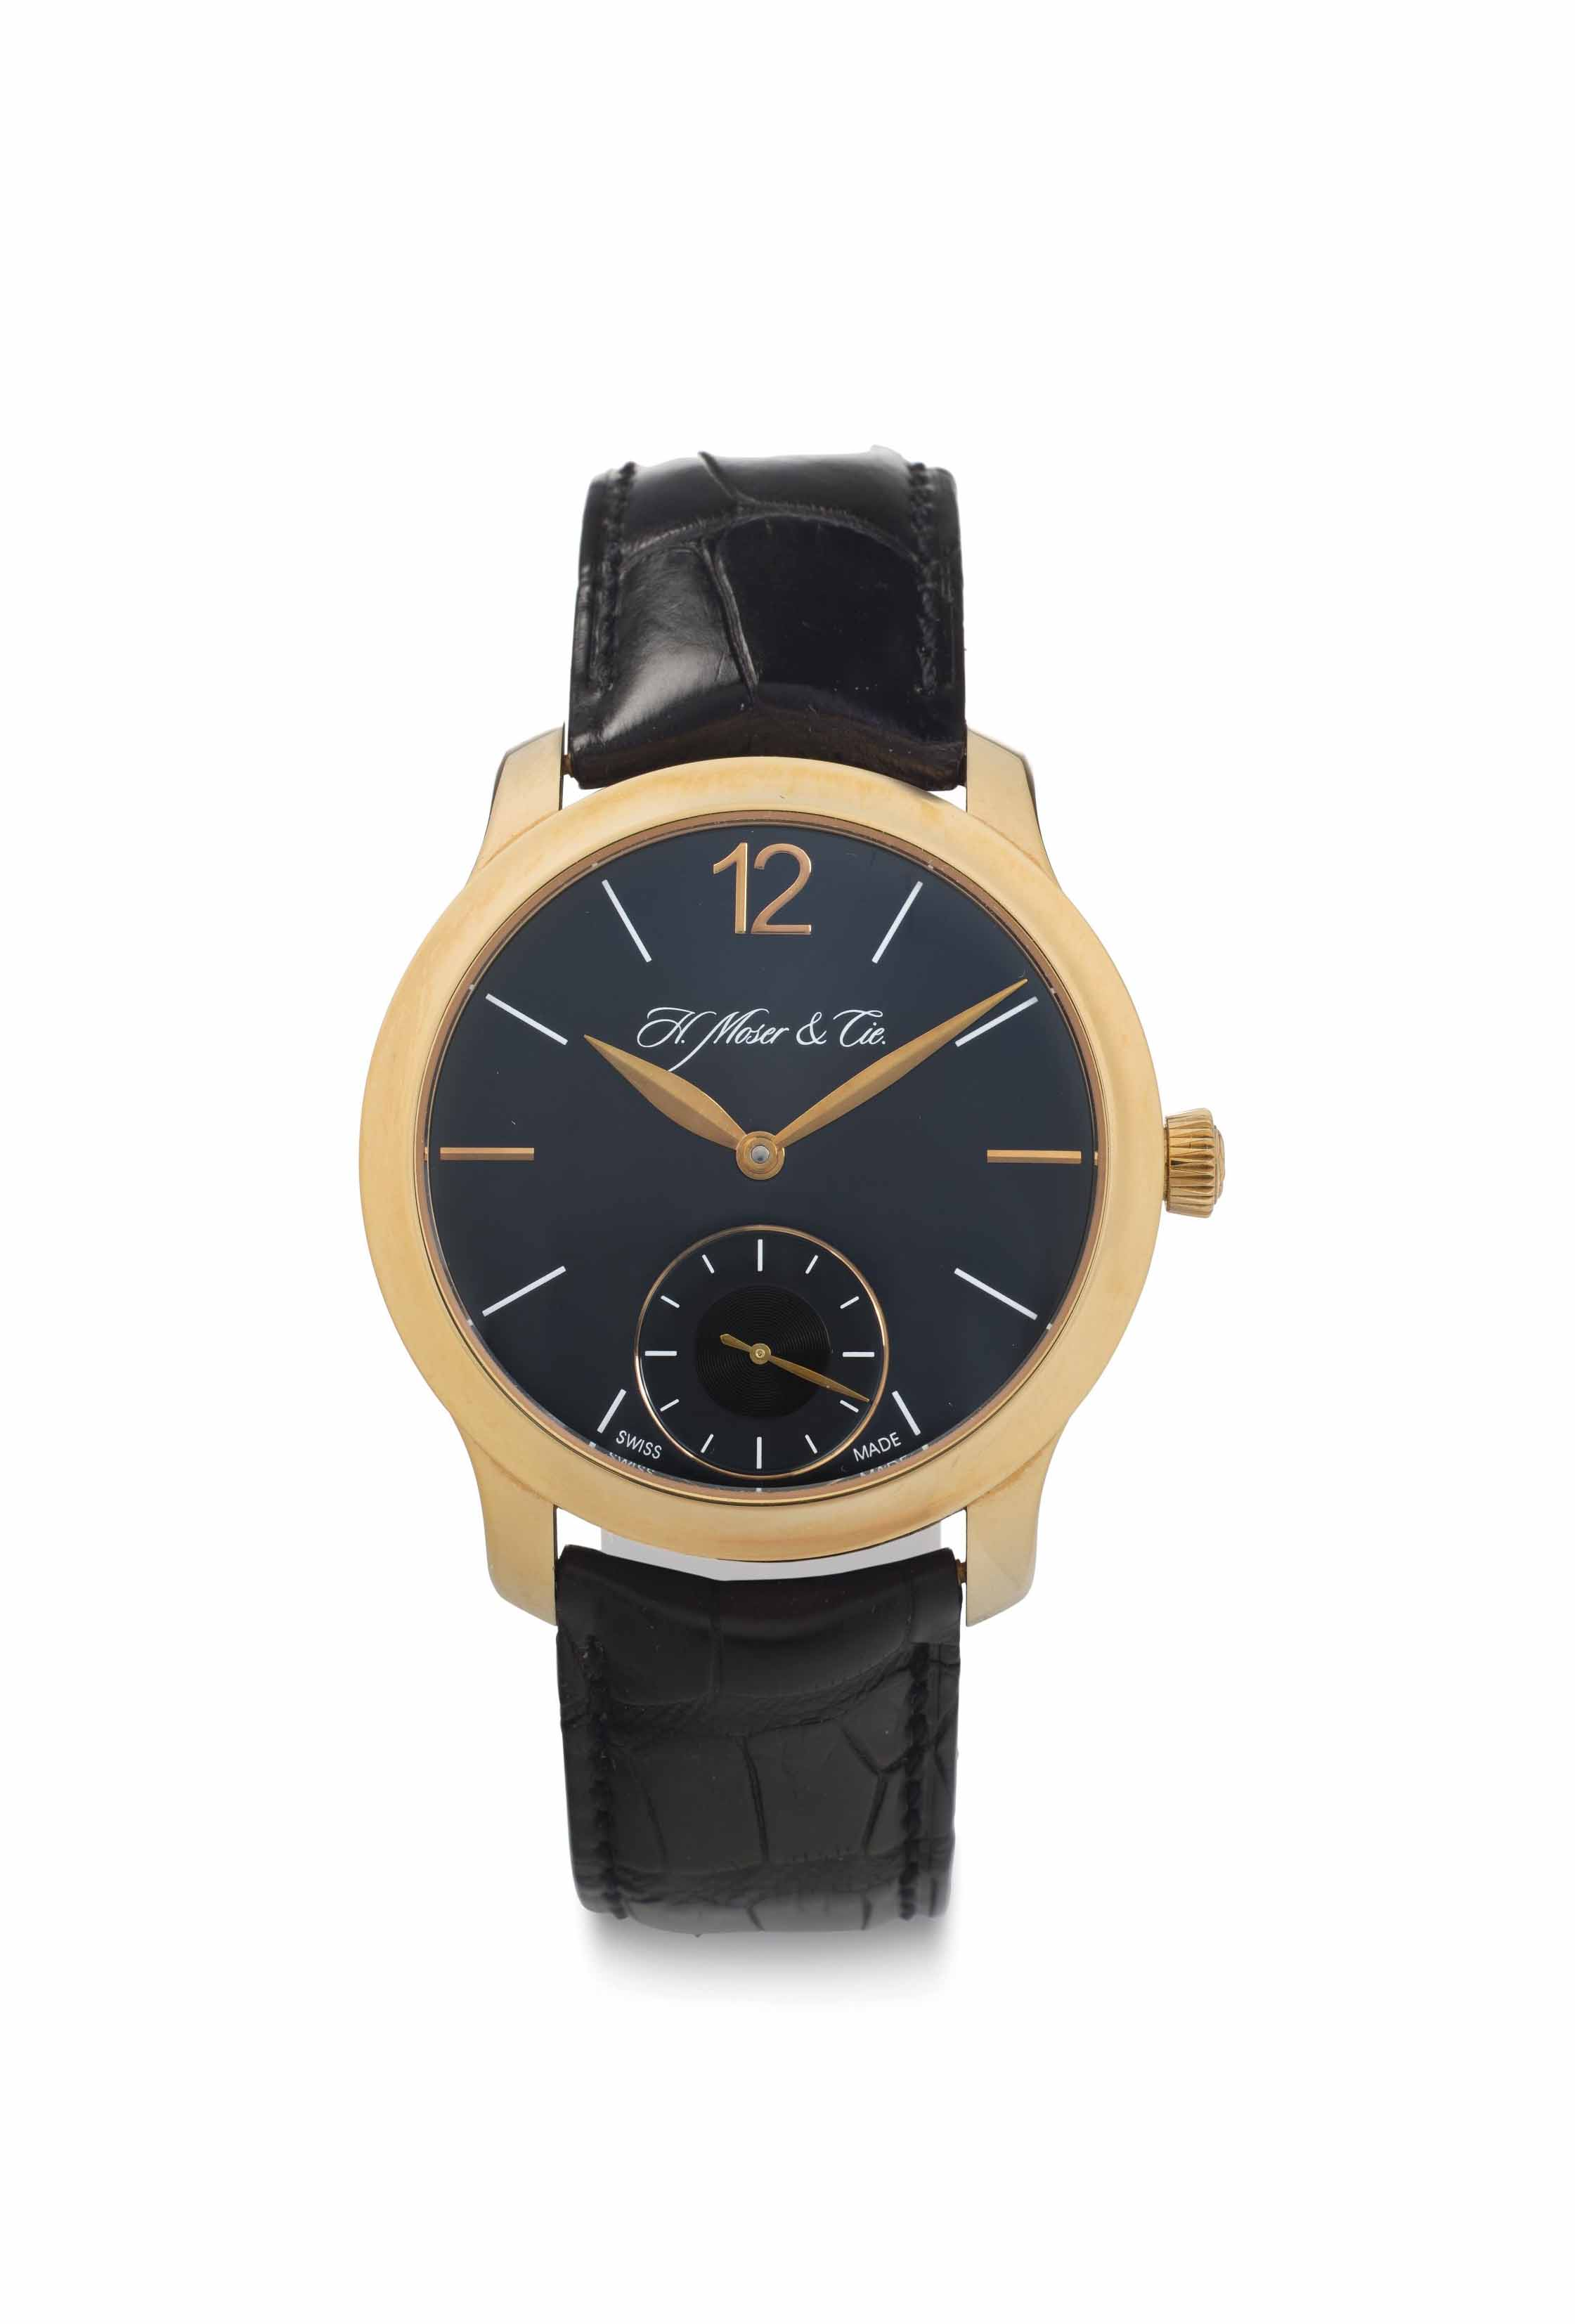 H. Moser & Cie. An 18k Pink Gold Wristwatch with Power Reserve